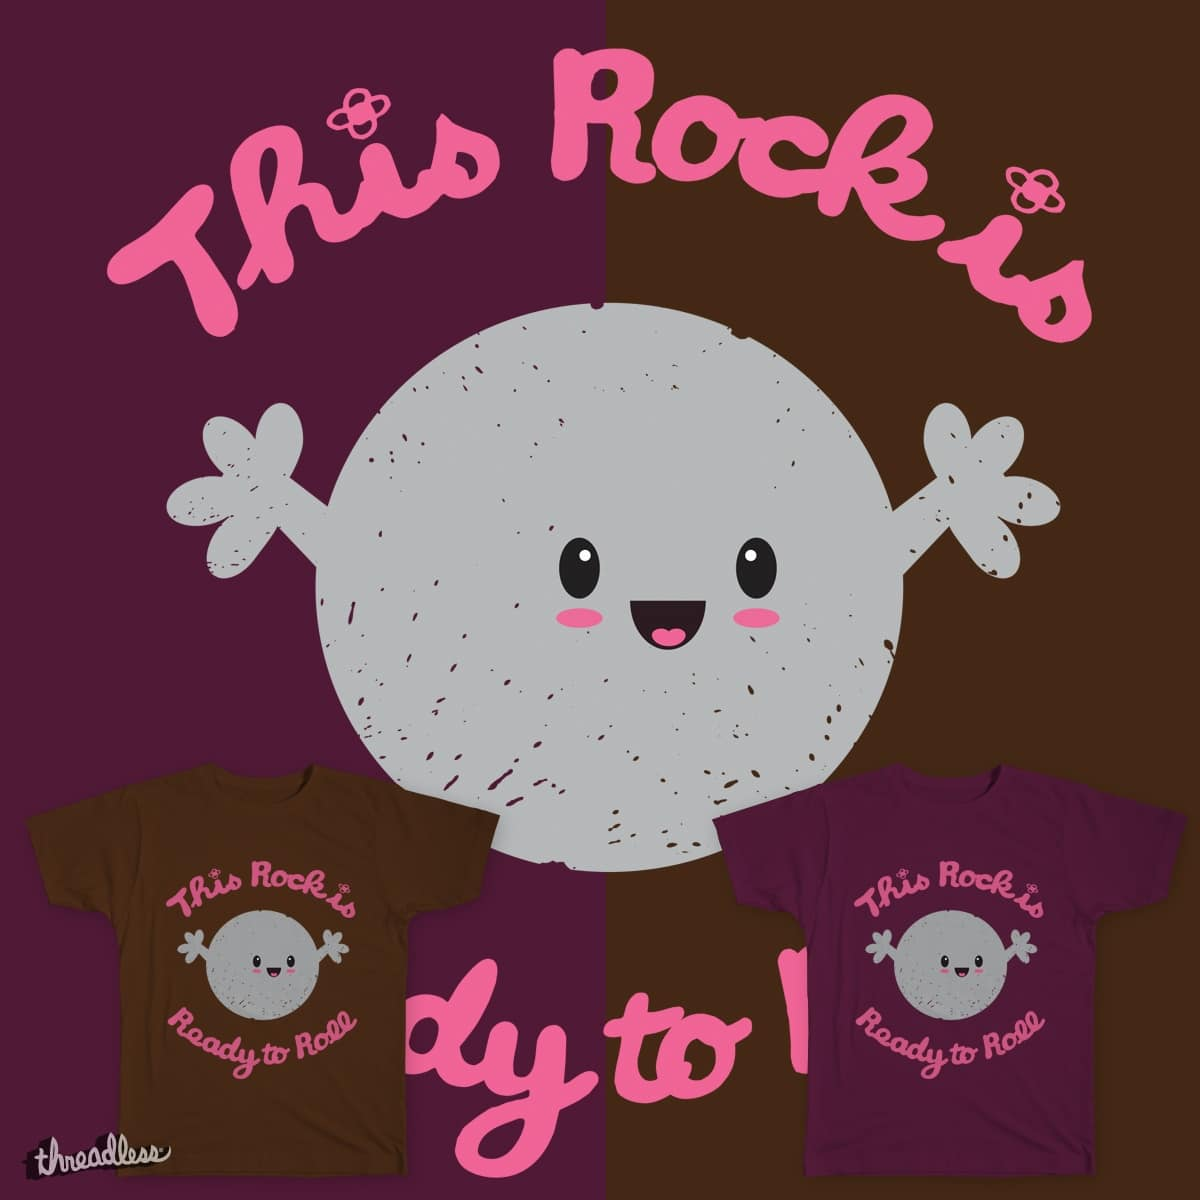 This rock is Ready to Roll by Sarahbevan11 on Threadless